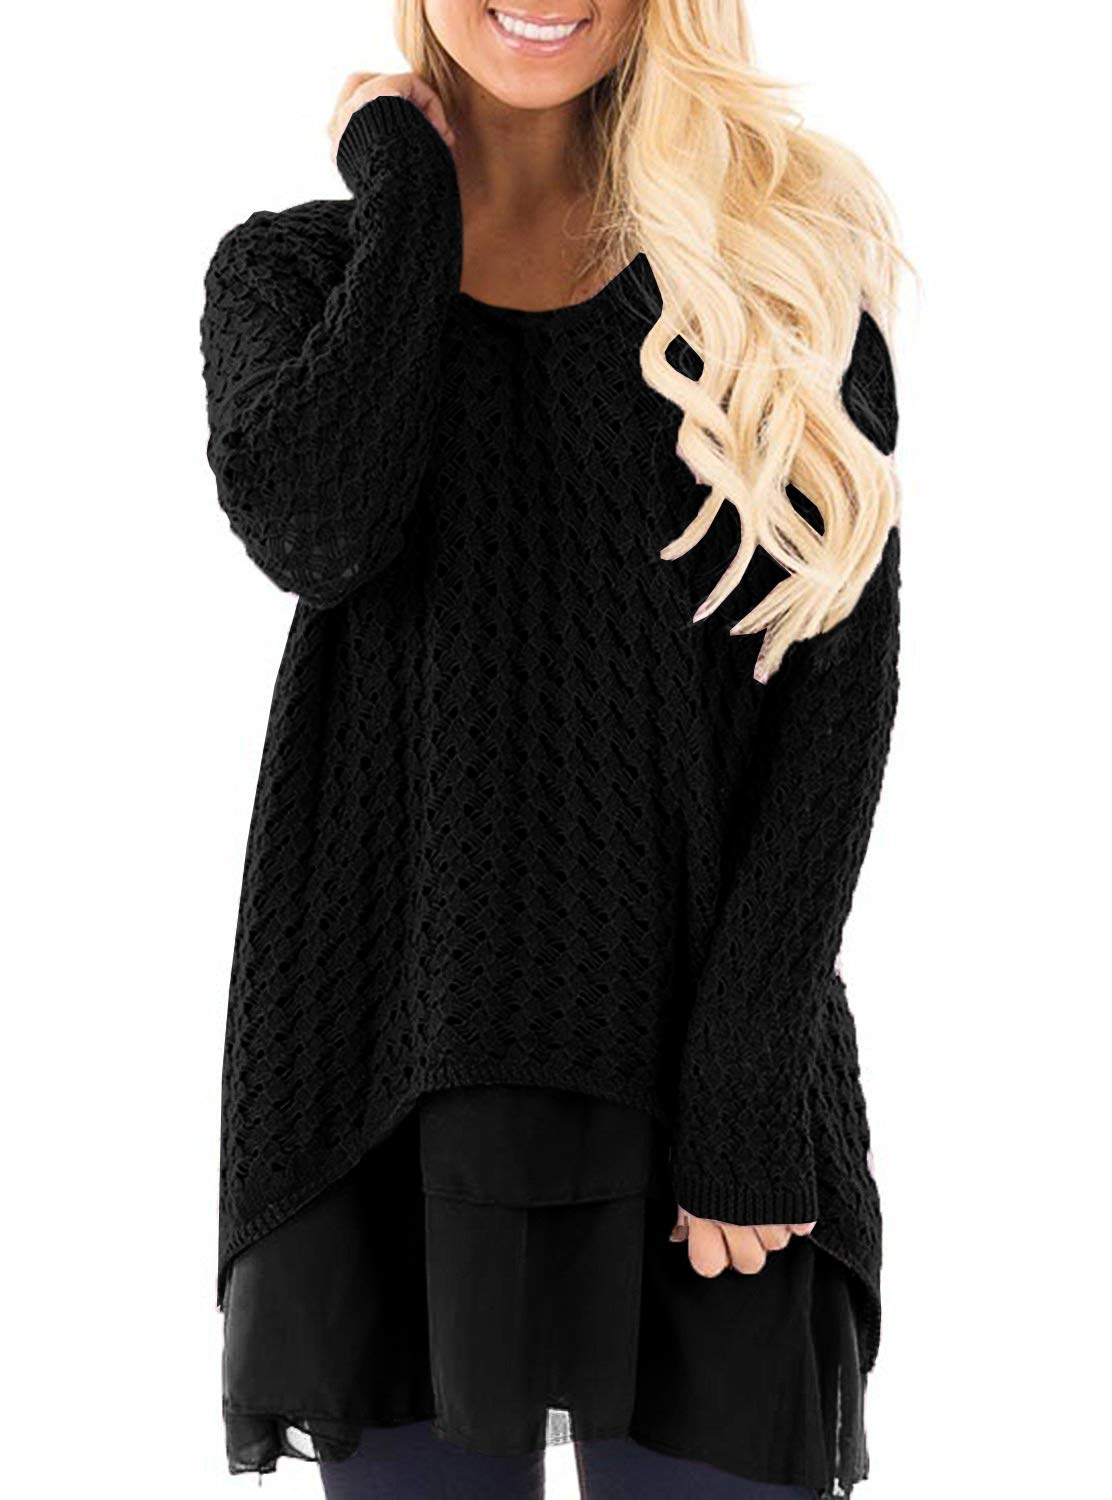 Haloumoning Womens Sweaters Fall Loose Round Neck Double Layer Cable Knit Pullover Dress